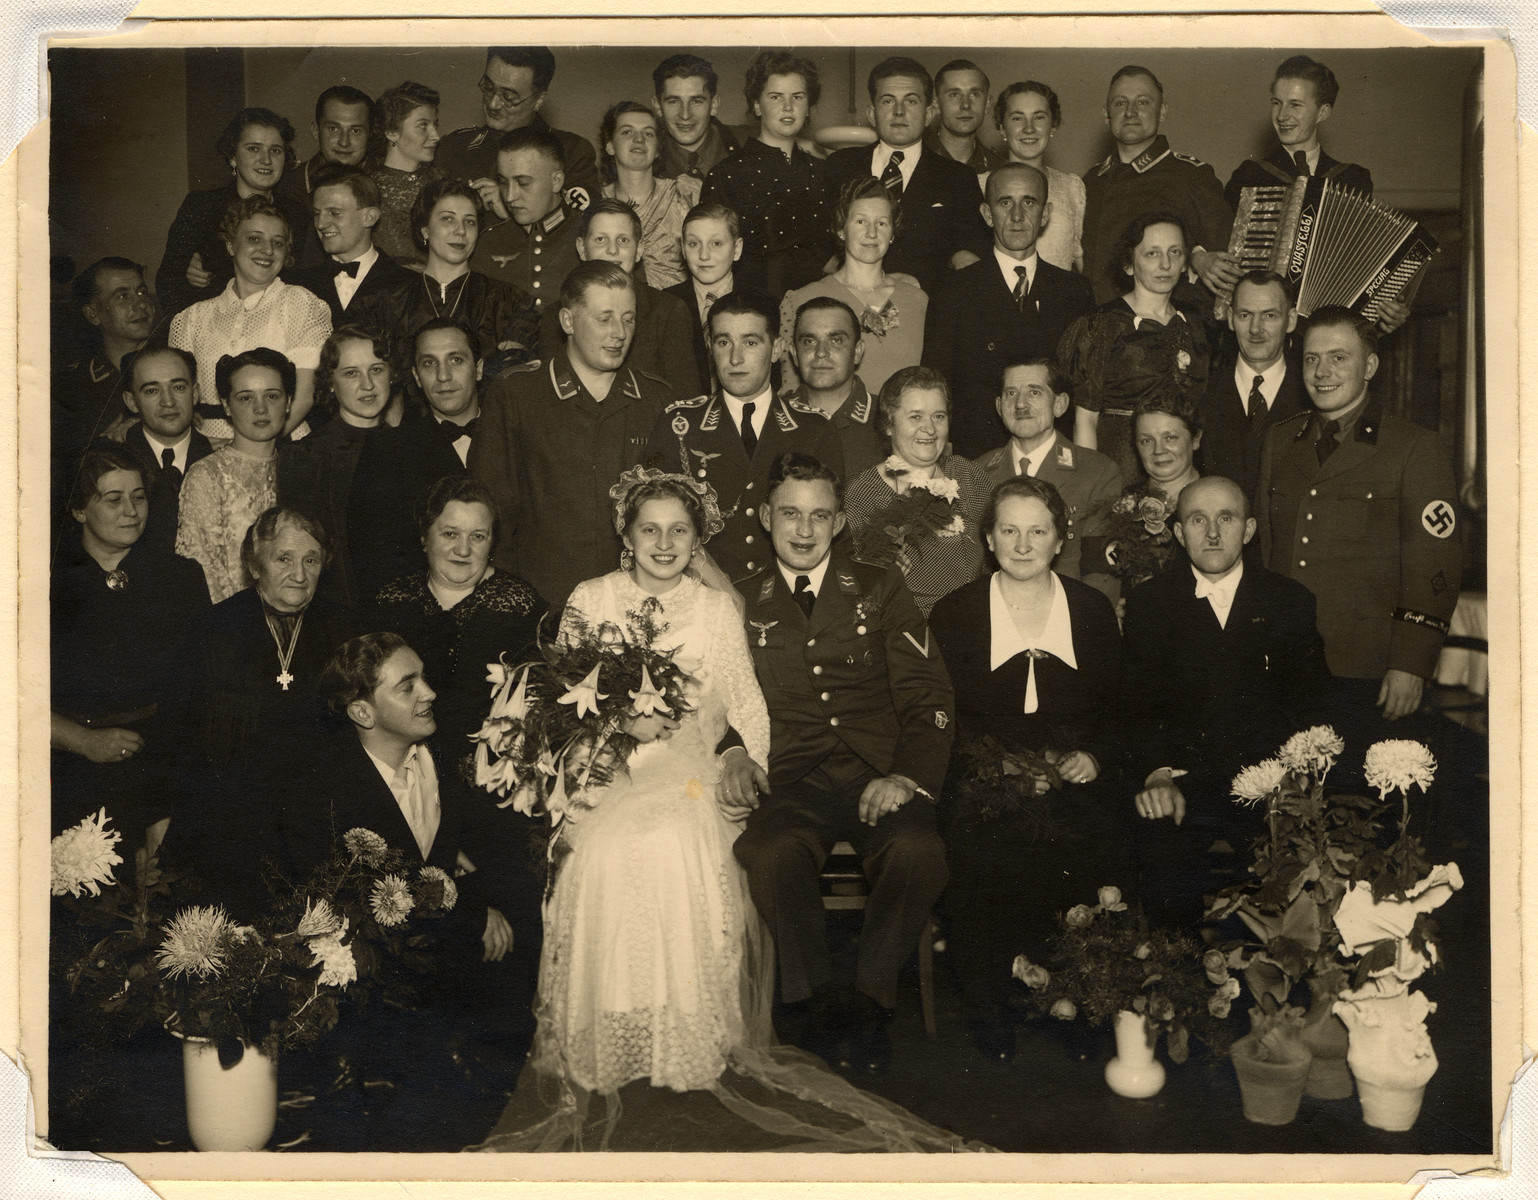 Family portrait taken at the wedding of an SS man.  The woman on the left is wearing a Cross of Honor of the German Mother, an award given to women who contributed to the pure Aryan race by reproducing.  Three levels of medals were awarded:  a bronze was given for four children, silver for six, and gold for eight.